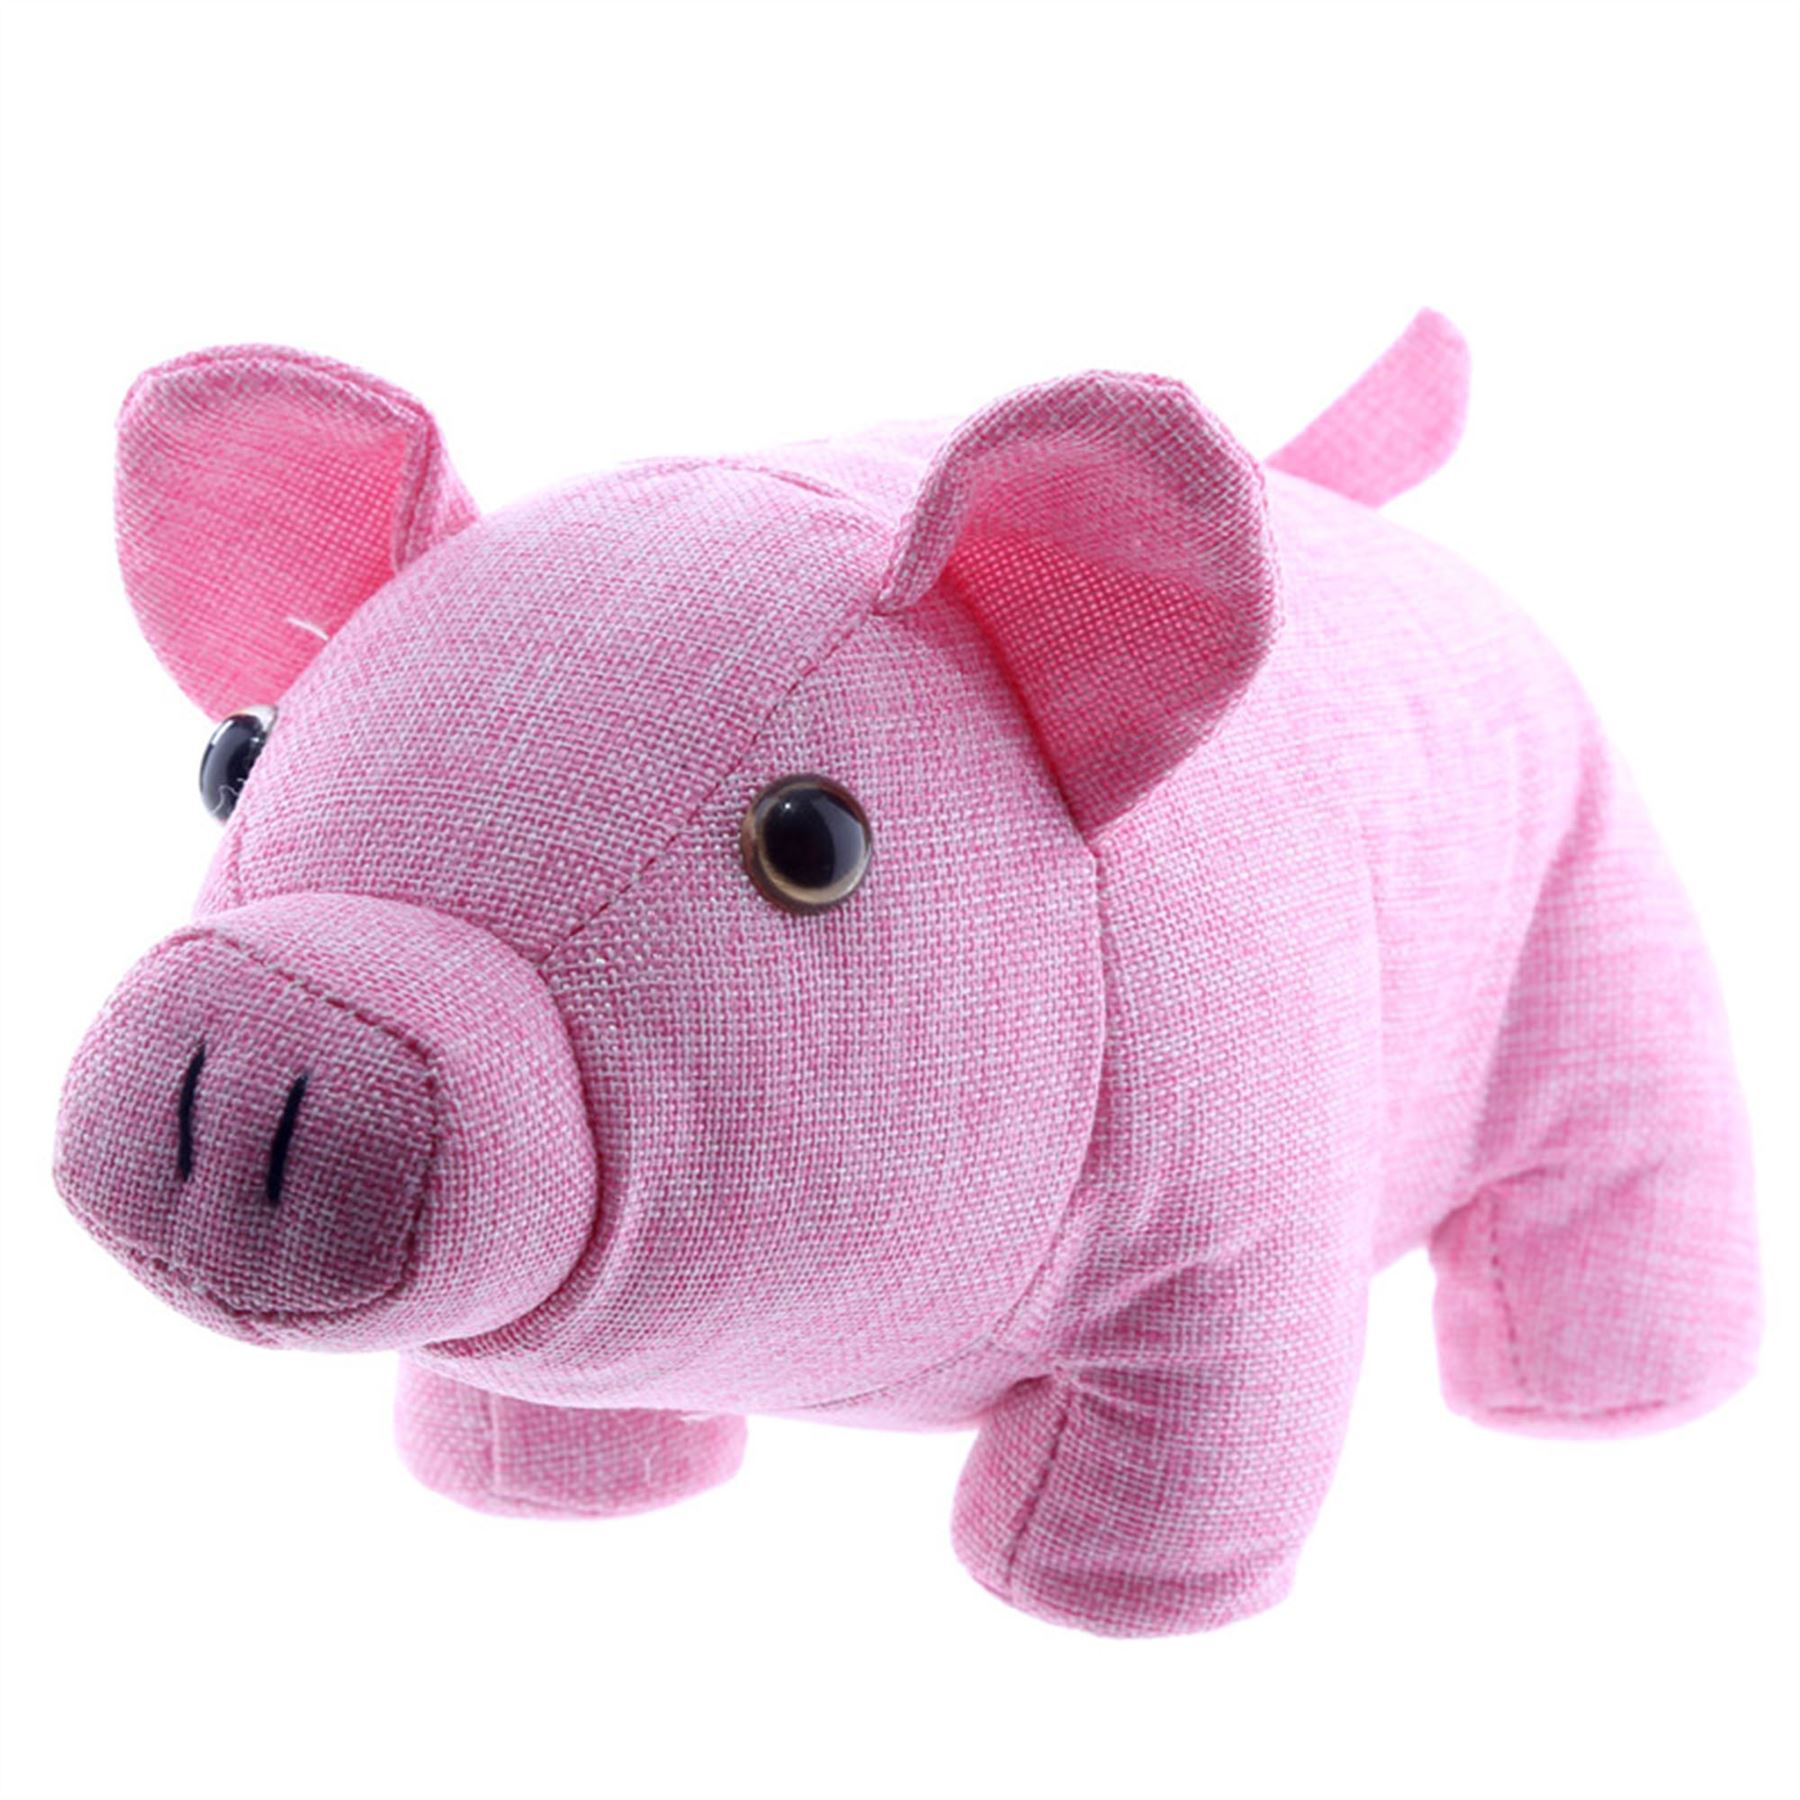 Fabric Door Stopper Pig Shaped Fabric Door Stop 14 5 Cm High Door Stopper Free